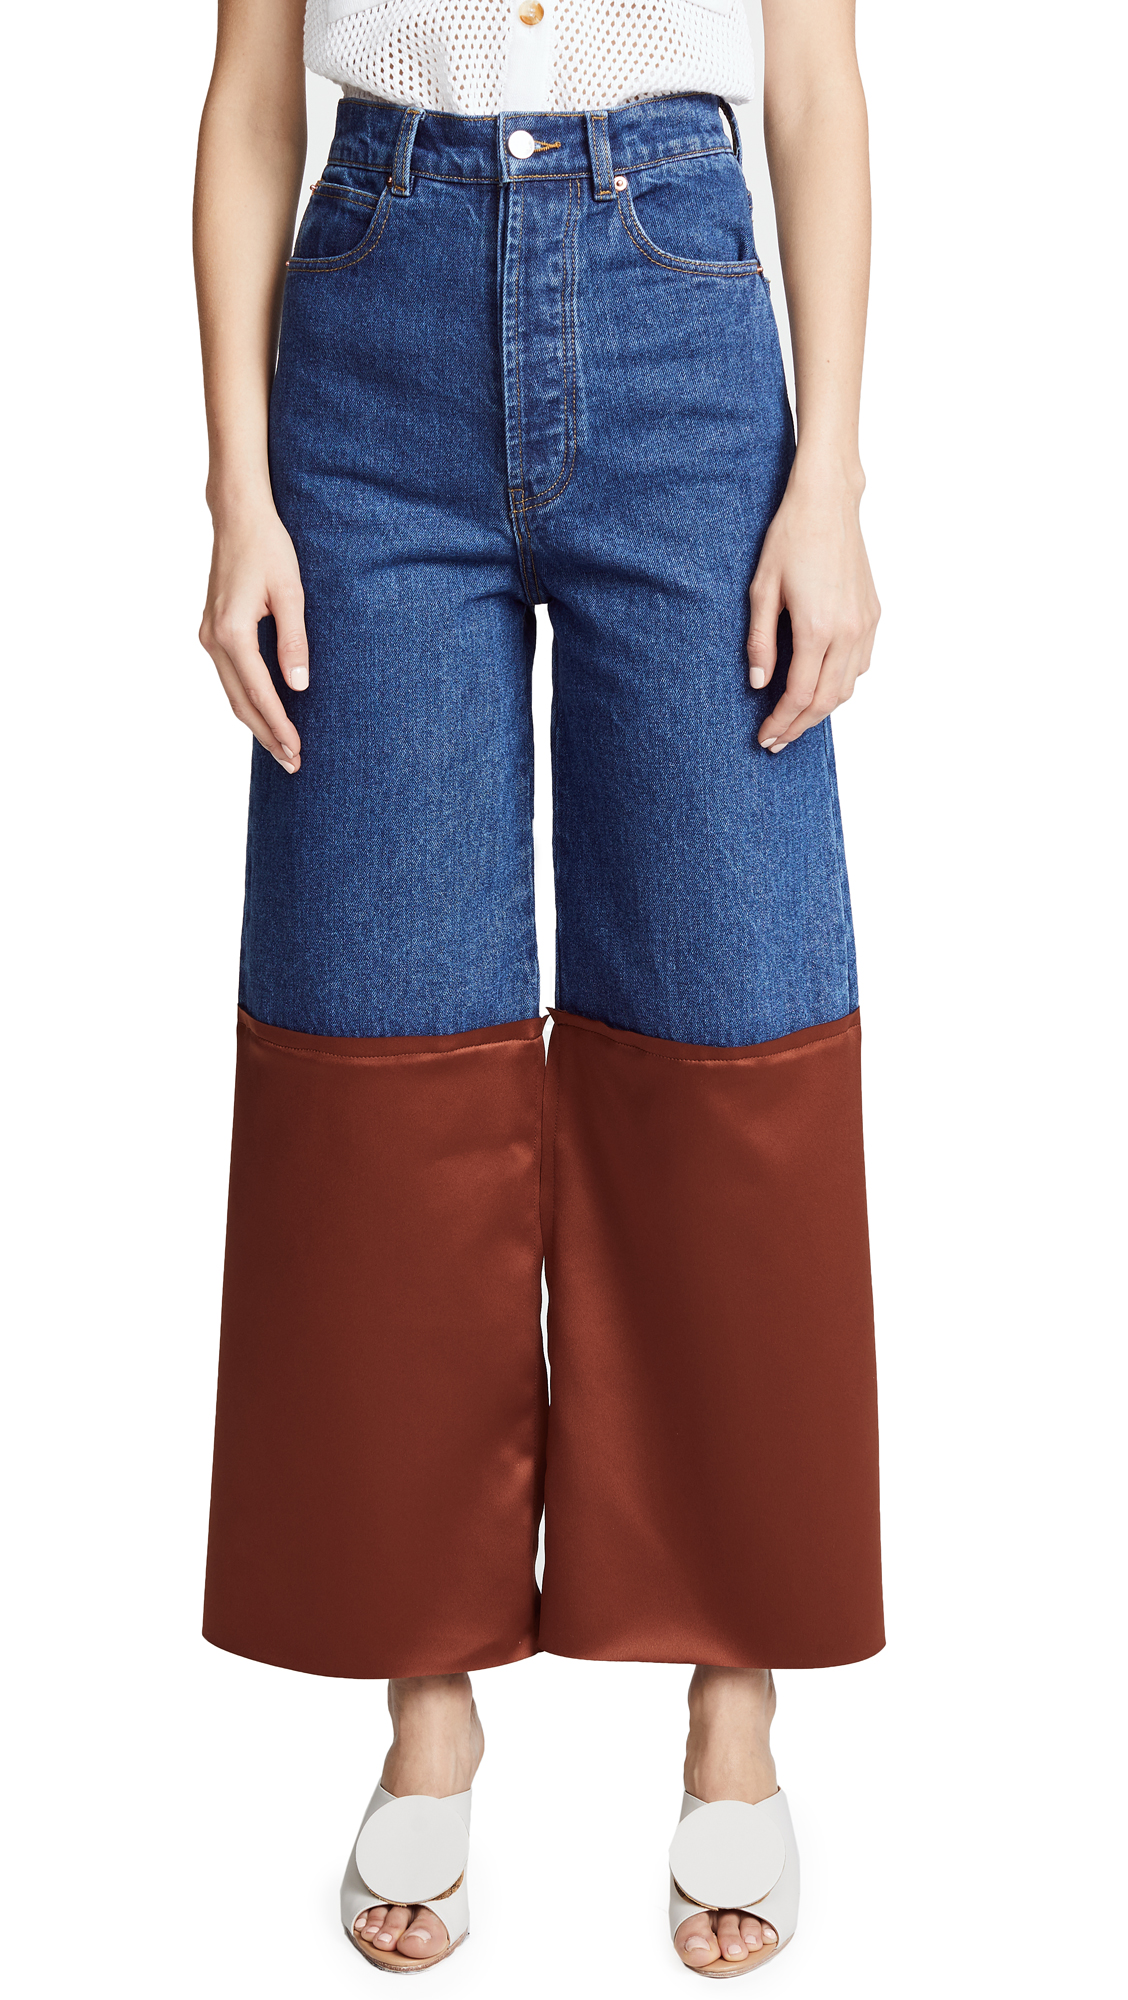 Solace London Amira Jeans In Blue/Brown